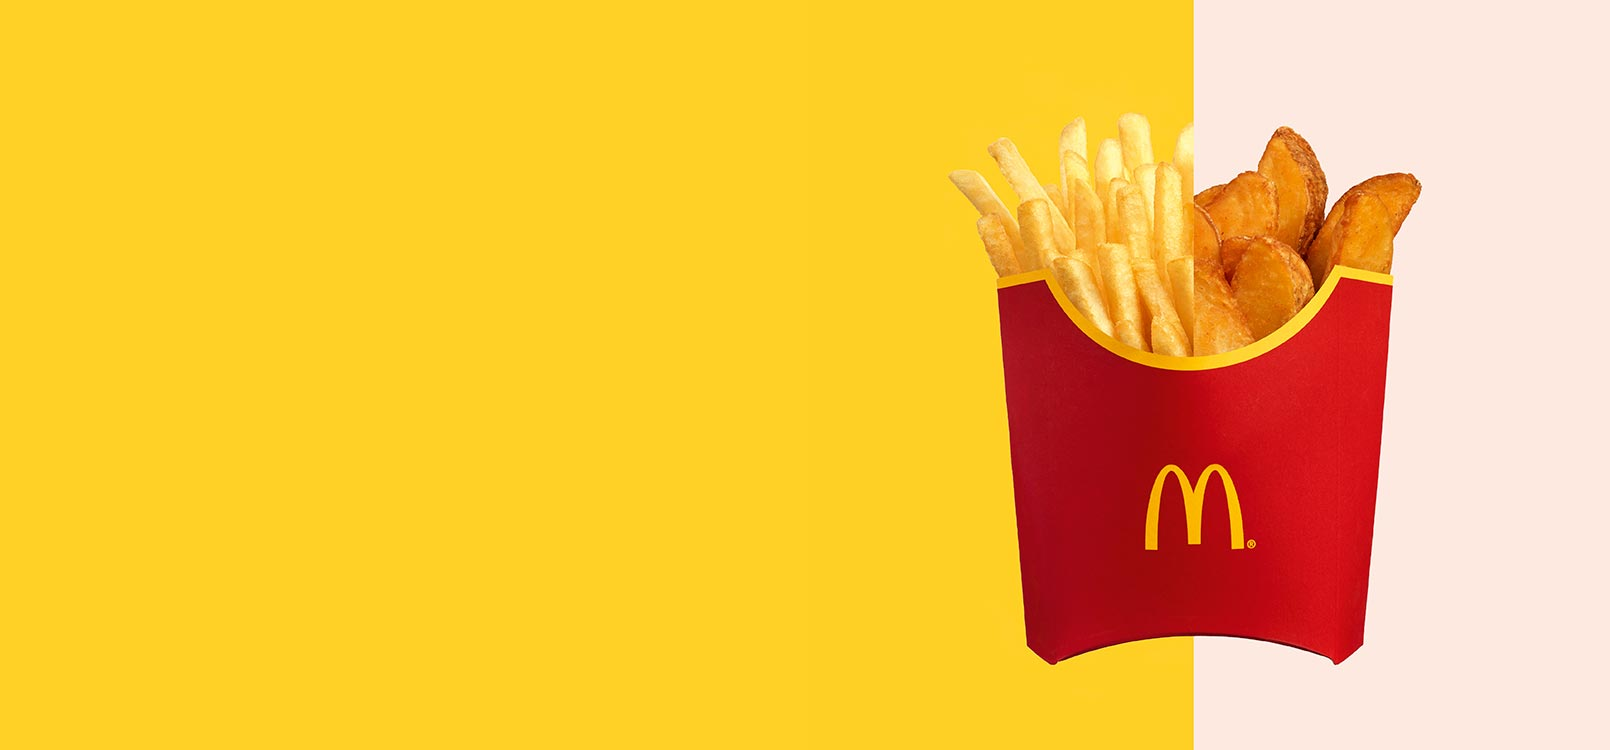 MCDO_FRITES_POTATOES_Coverimg_V2